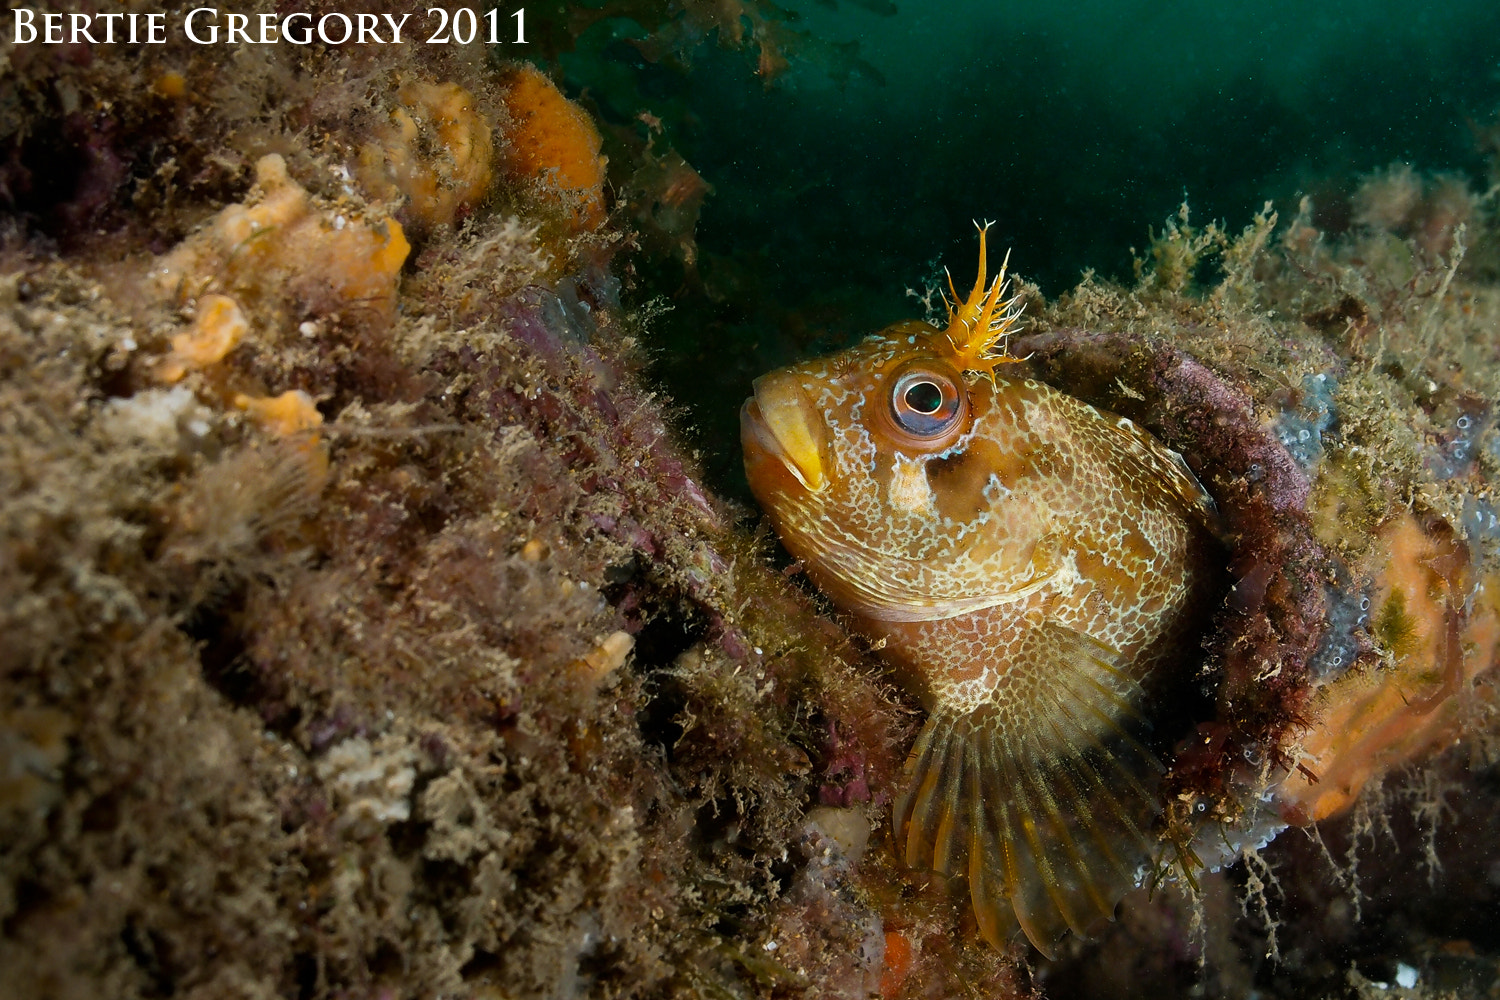 Photograph Tompot blenny  by Bertie Gregory on 500px